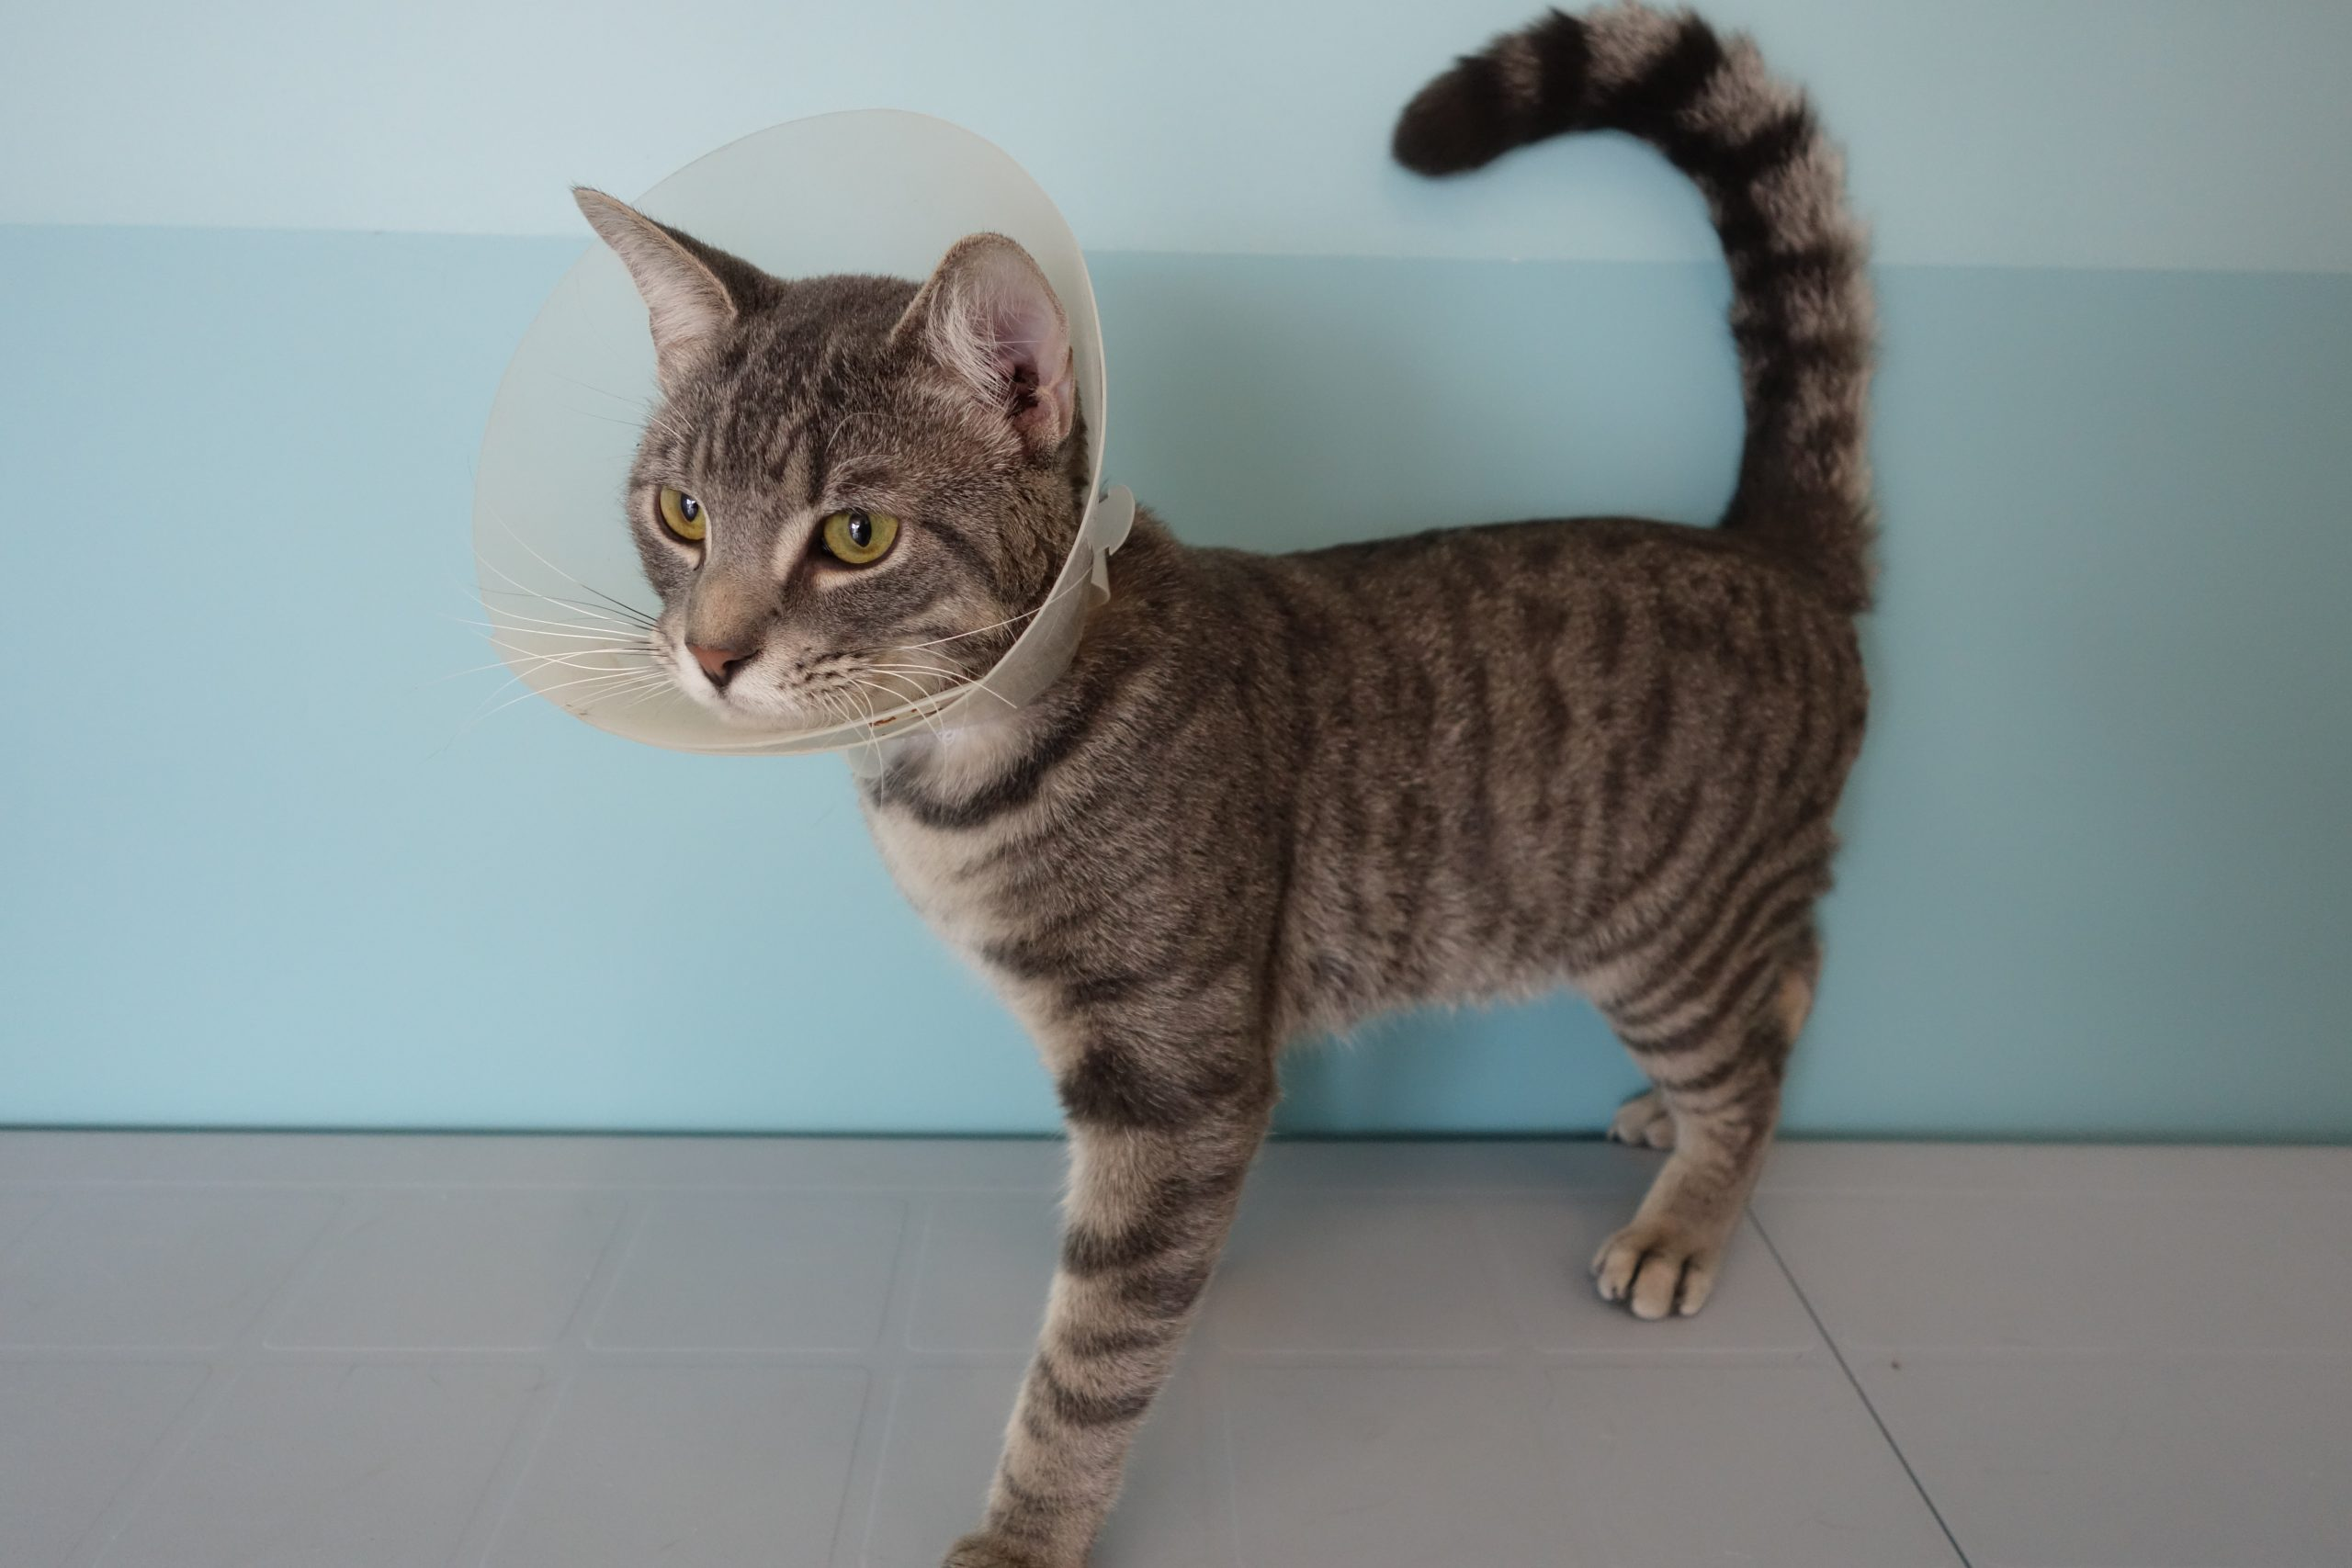 Humane Society looks to identify intentionally injured cat